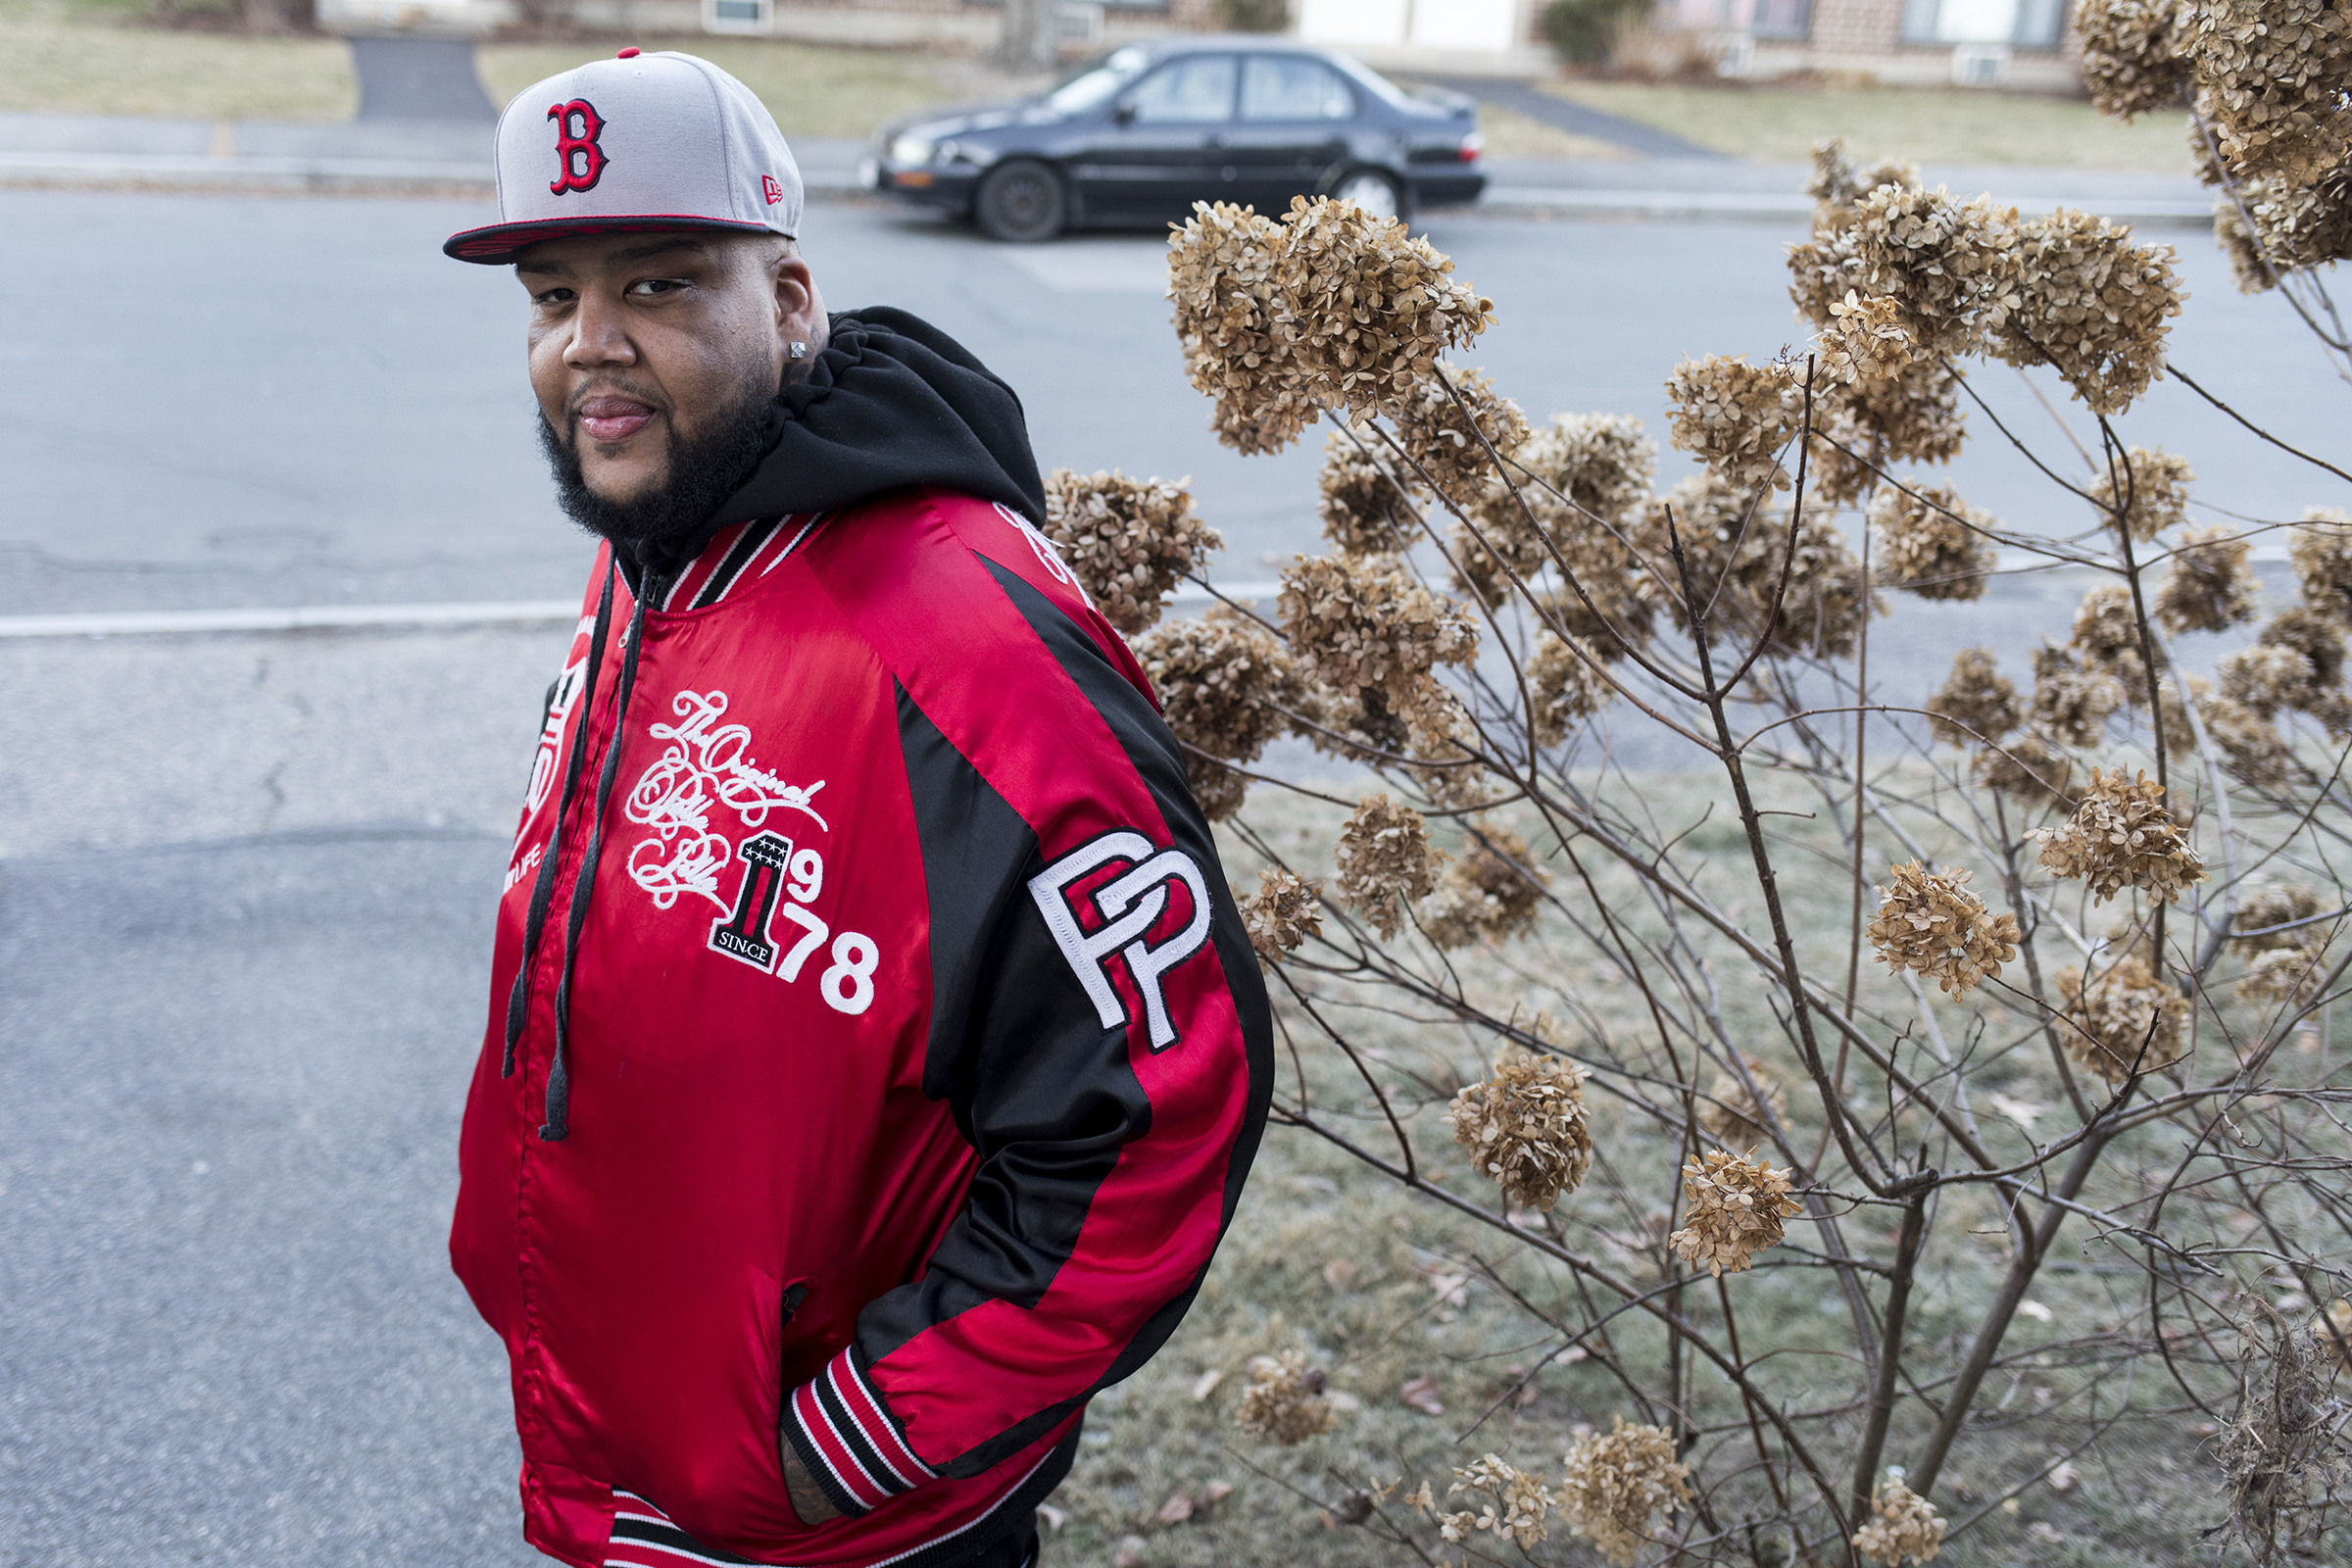 """Cheniel Garcia poses for a portrait outside of his family home in Framingham on Dec. 11, 2018. After serving four years in prison for drug charges, Cheniel Garcia changed his life. When he became friends with lifetime inmates, Garcia realized he was lucky to have an opportunity for a second chance. He focused on eating less and exercising more, he lost 212 pounds. He joined a barber education program and focused on his faith. Now, four months after being released, Garcia works full-time at the Dream Team Barber Shop and continues to stay clean. """"Every day I was in prison, I had to learn something new. I couldn't let prison shut me down."""""""